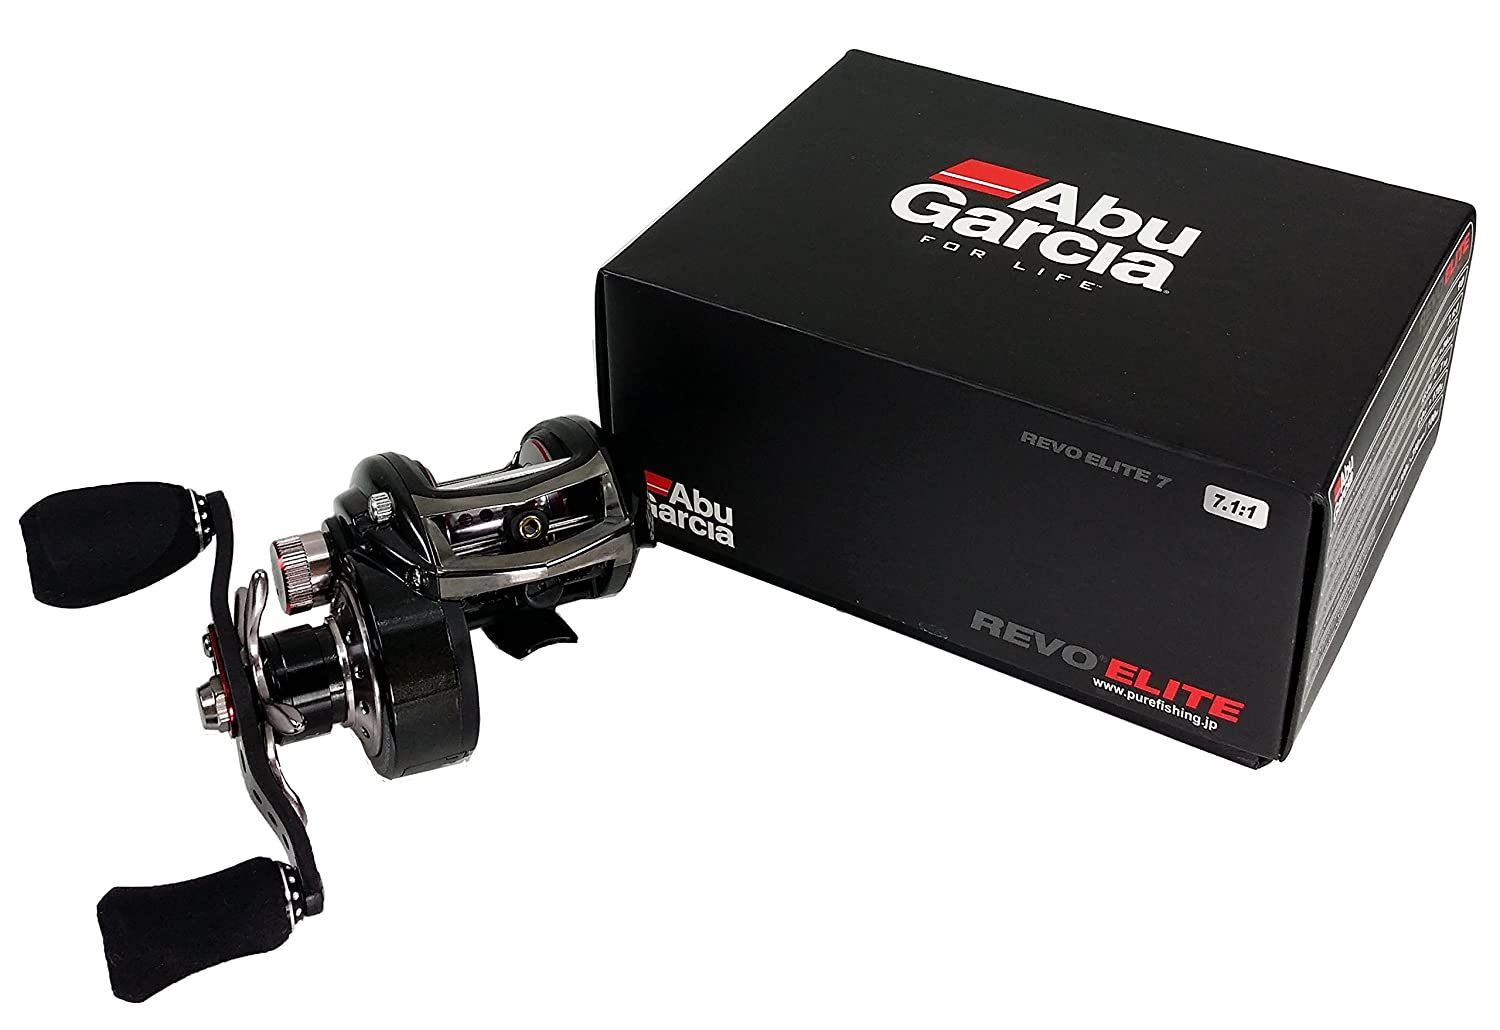 Abu Garcia Revo Elite 7 – 7.1 : 1 High Speed Lowプロファイル餌鋳造釣りリール Right  B01MA4OOEO